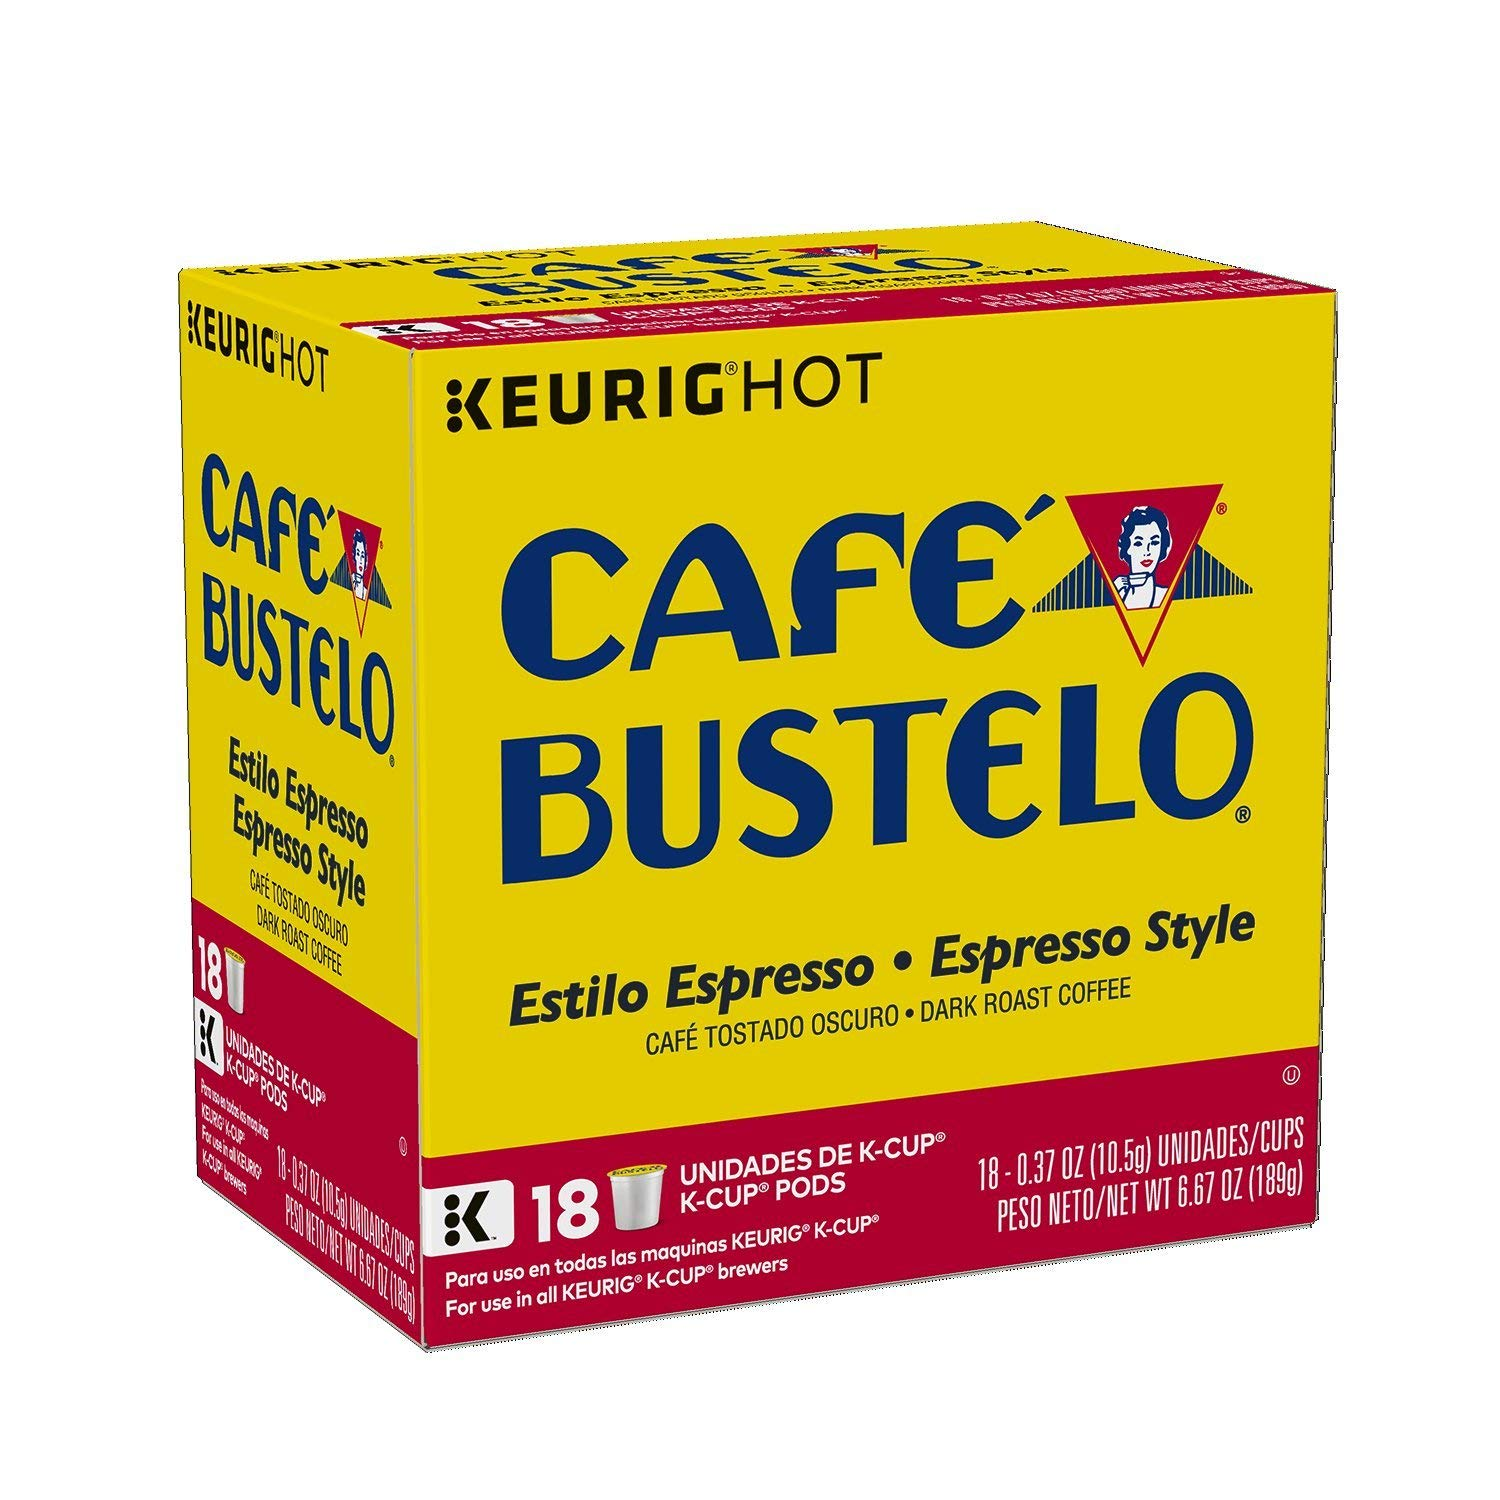 Amazon.com: Café Bustelo Espresso Style K-Cup Pods for Keurig K-Cup Brewers, Dark Roast Coffee, 18 Count (Pack of 4) (Limited Edition) (Original Version): ...